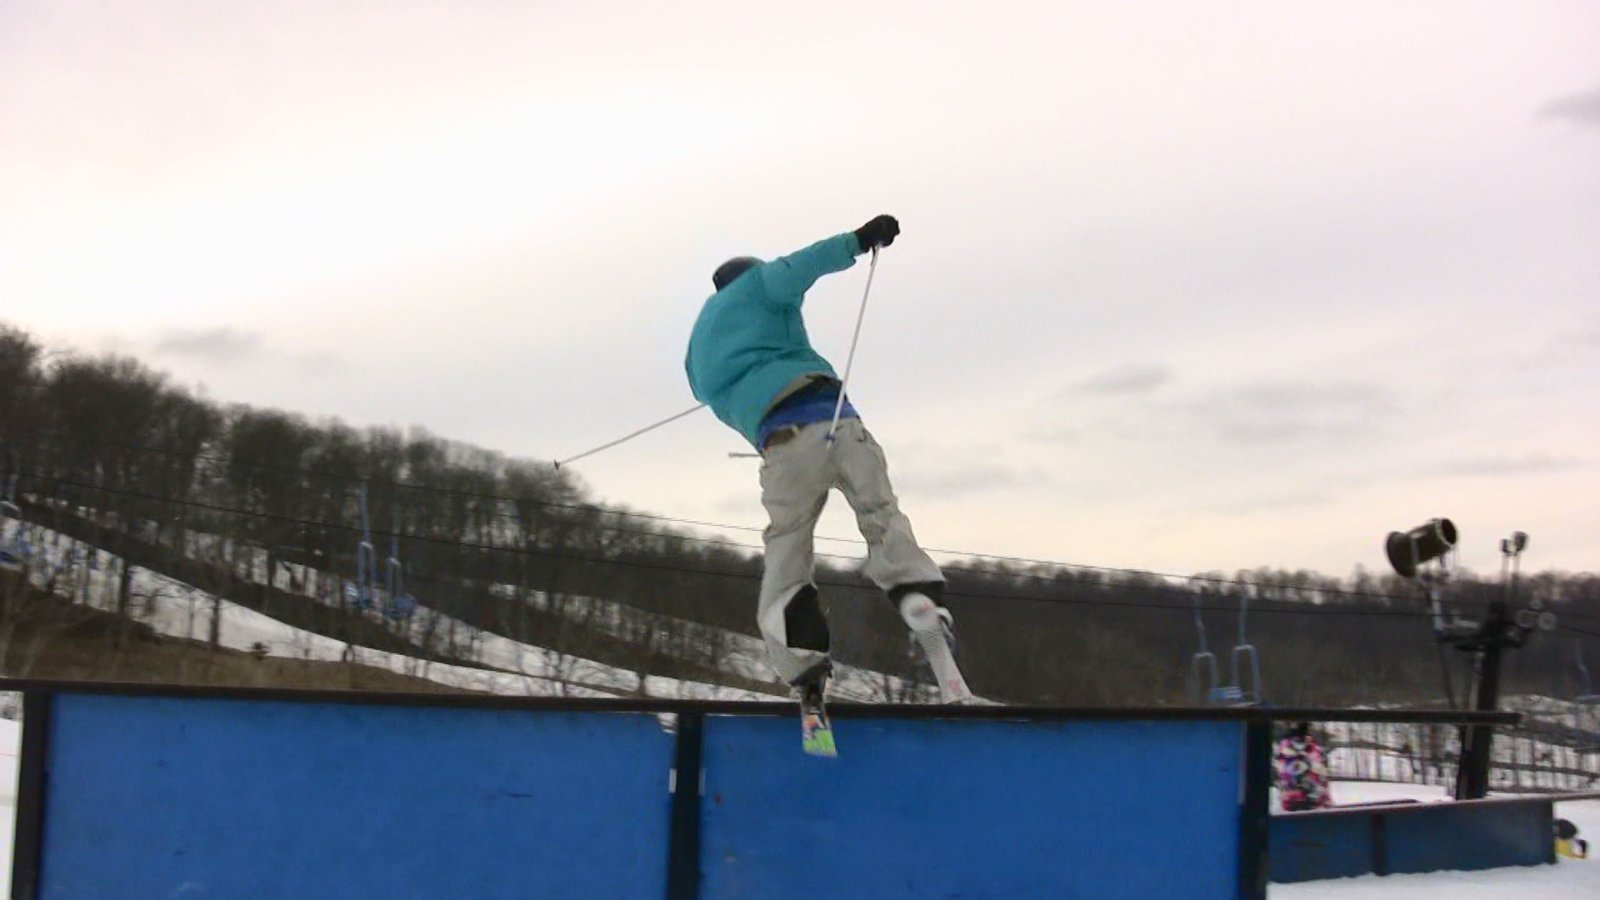 Video still: sam onto tall-t rail